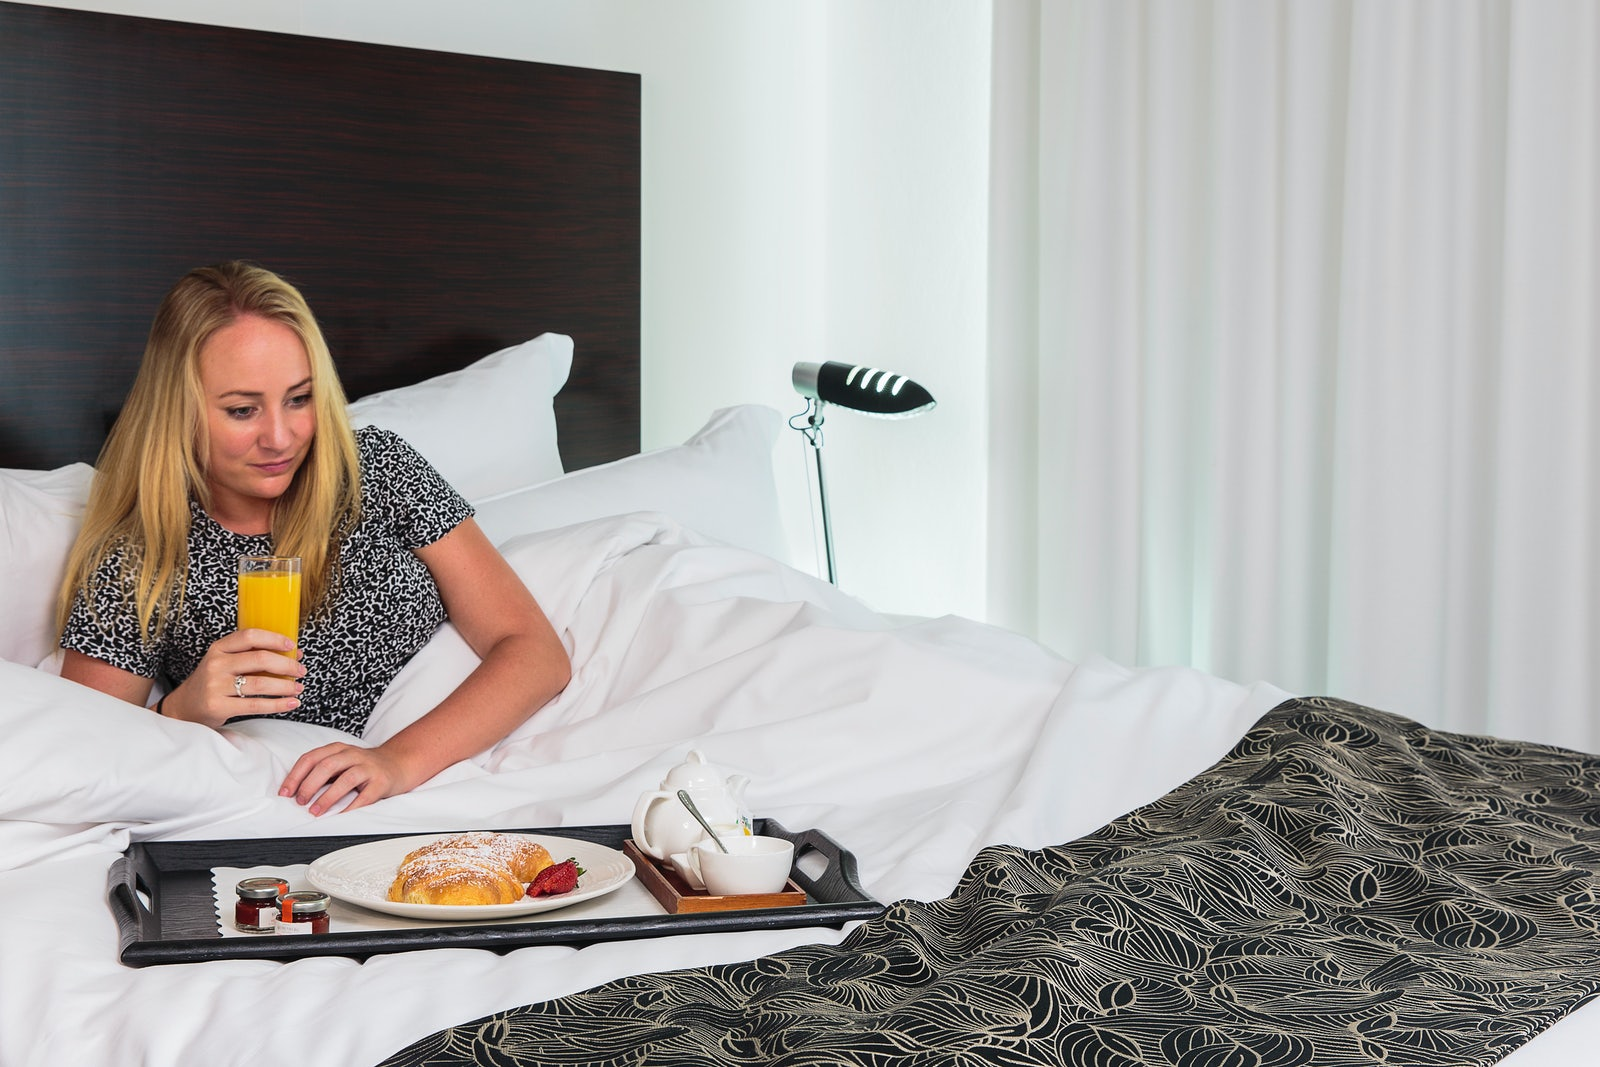 A picture of a woman having breakfast in bed at the Cambridge Hotel in Surry Hills Sydney